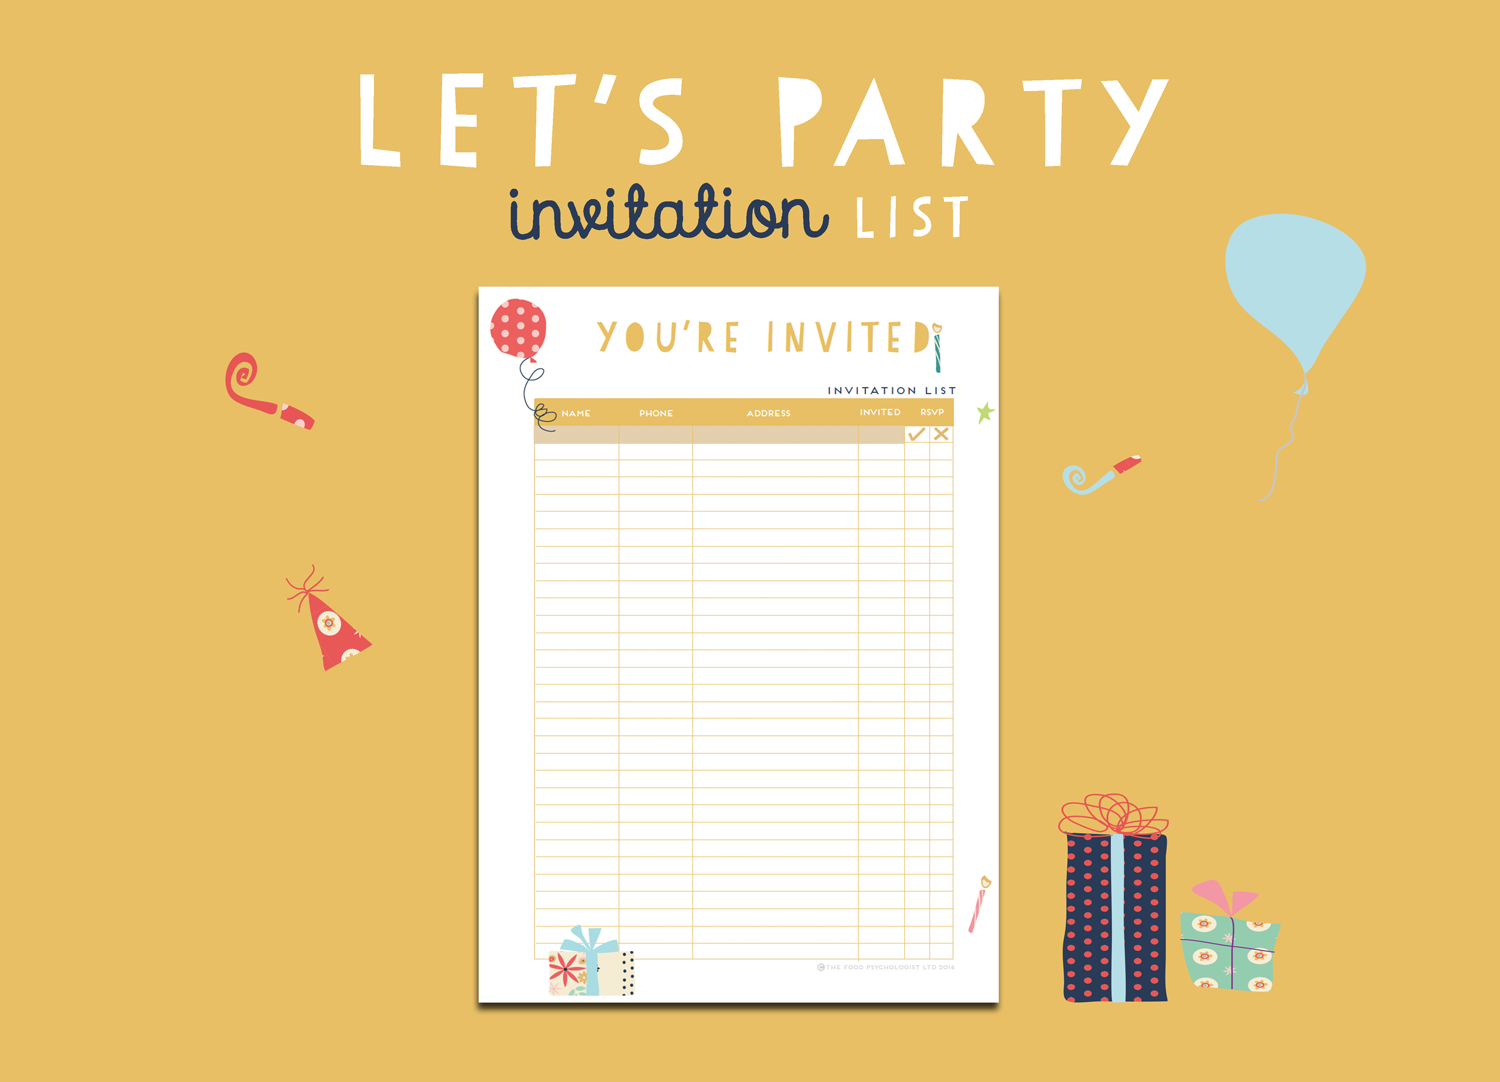 Let's Party Invitation List